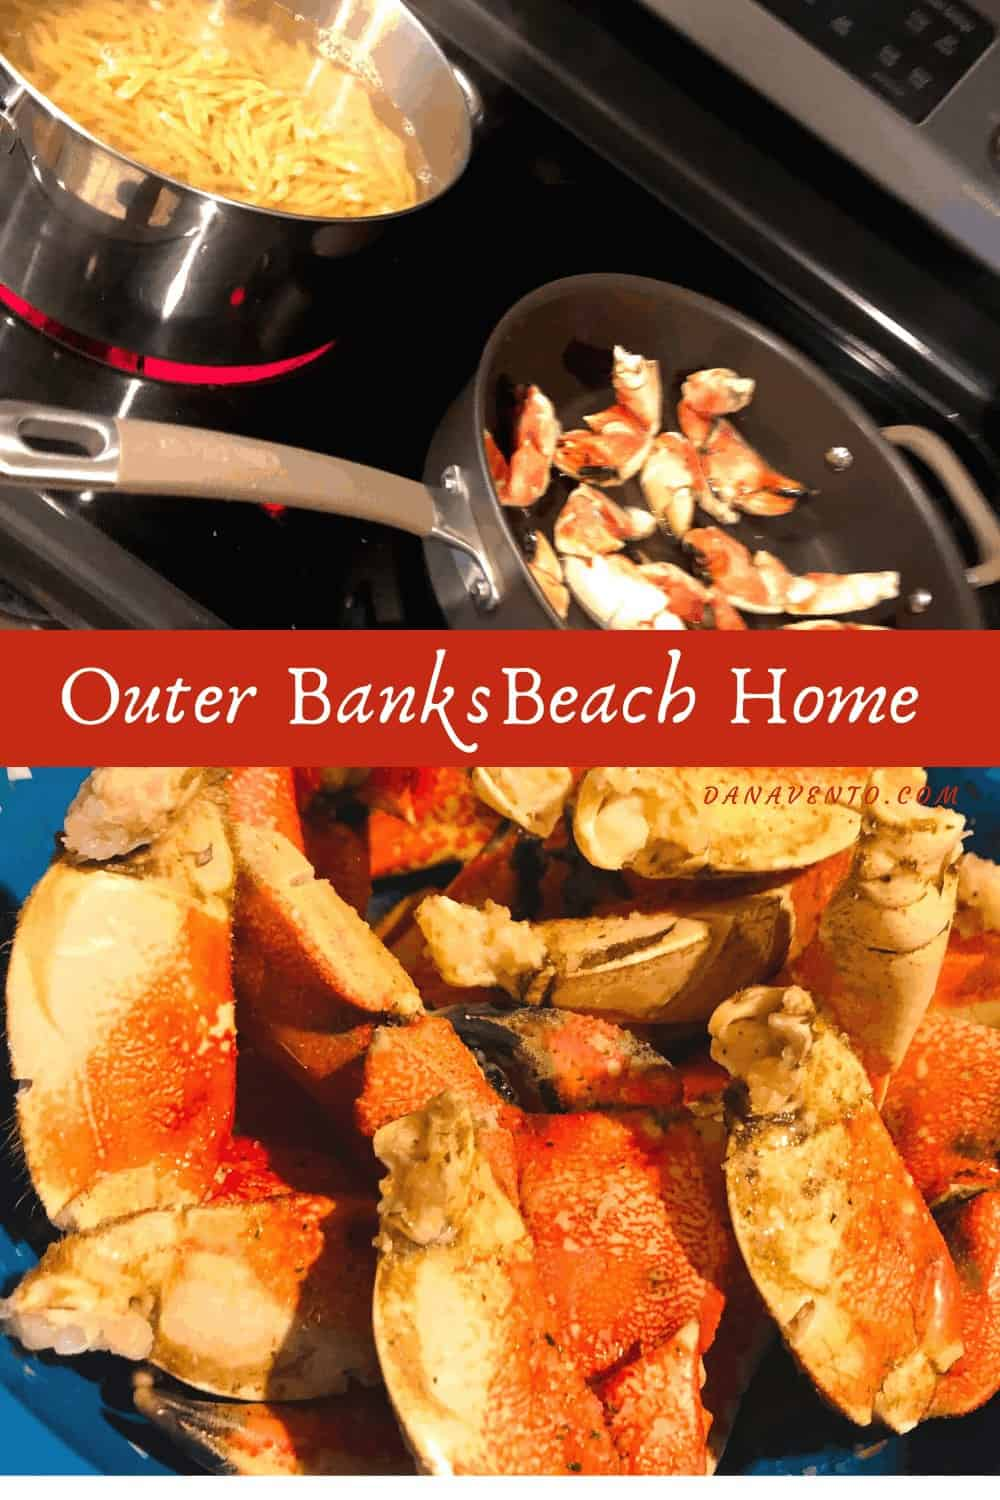 Crab on stove in Outer Banks Beach Home